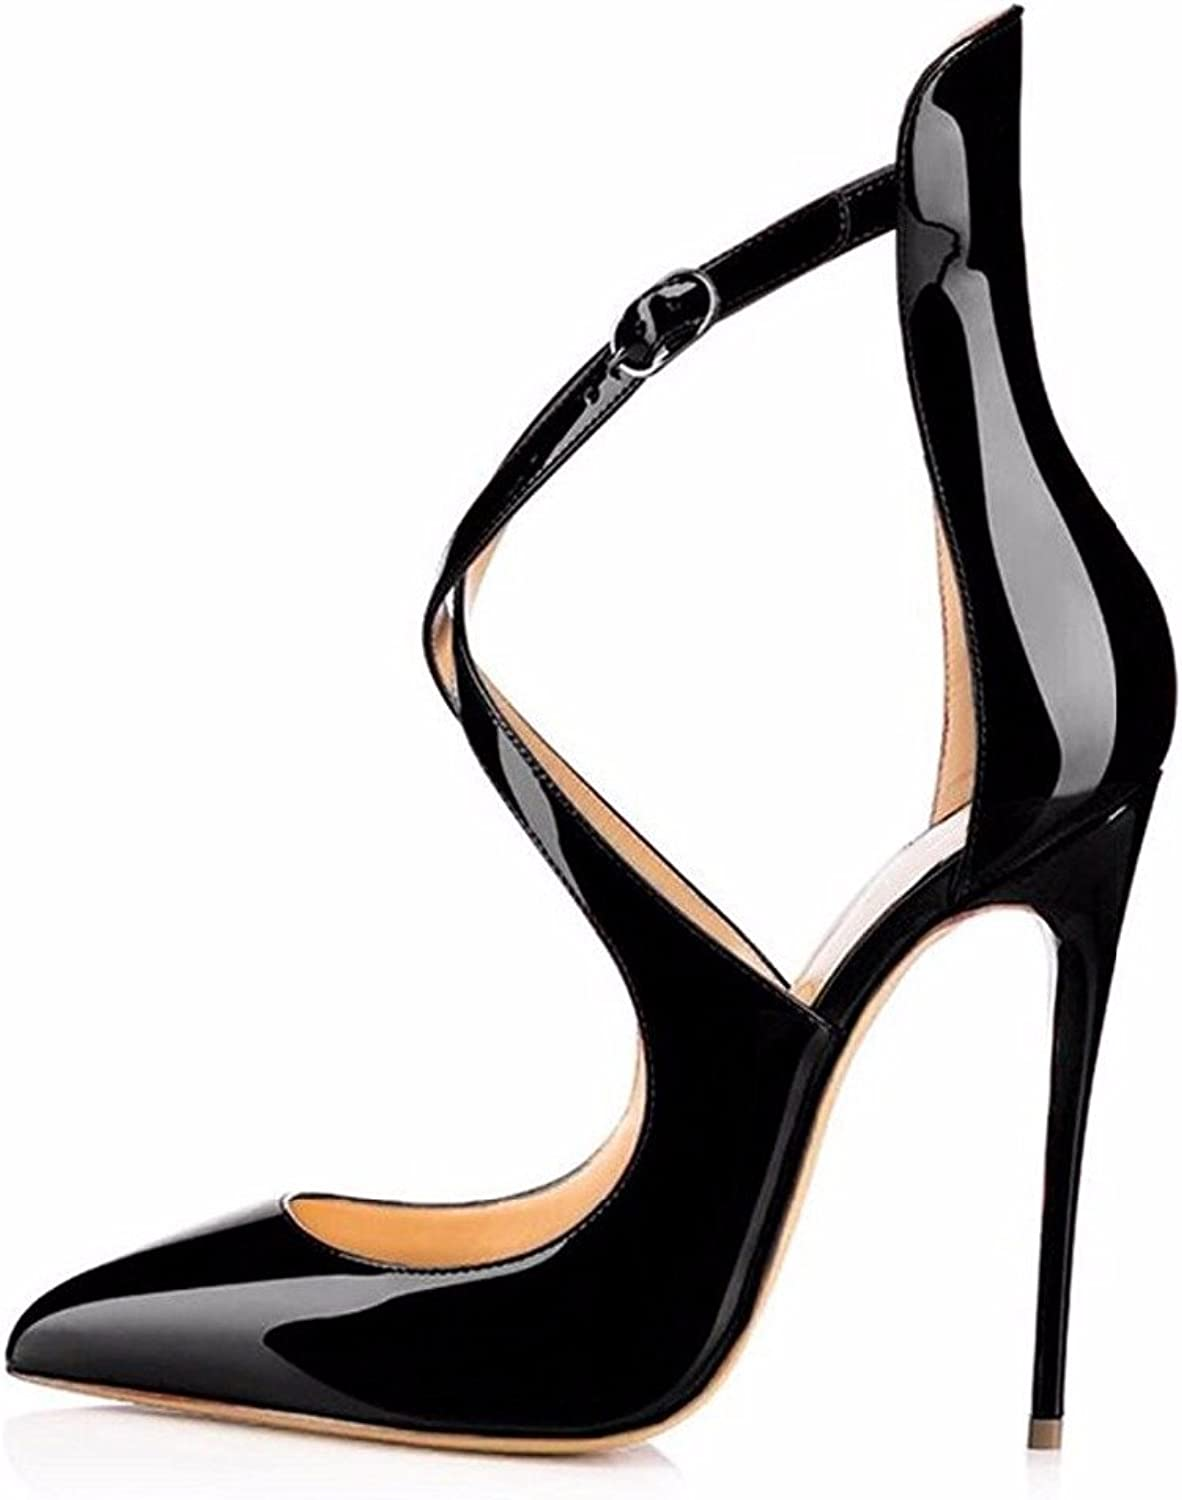 YBeauty Women's Stiletto Heels Criss Strap Sandals-Pointed Toe Ankle Strap Pumps shoes High Heel Sandals